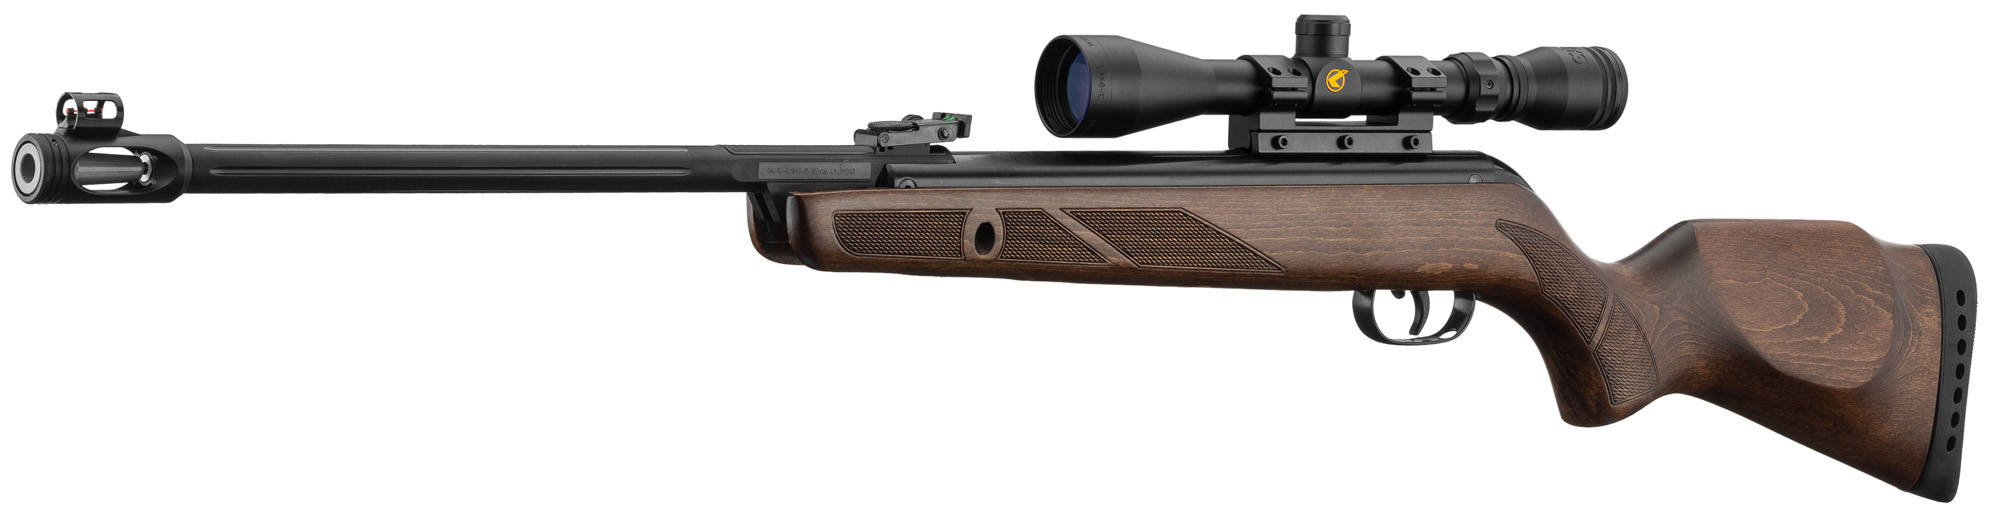 G1400C-6-Carabine GAMO Hunter 440 AS + lunette 3-9 x 40 WR - G1400C